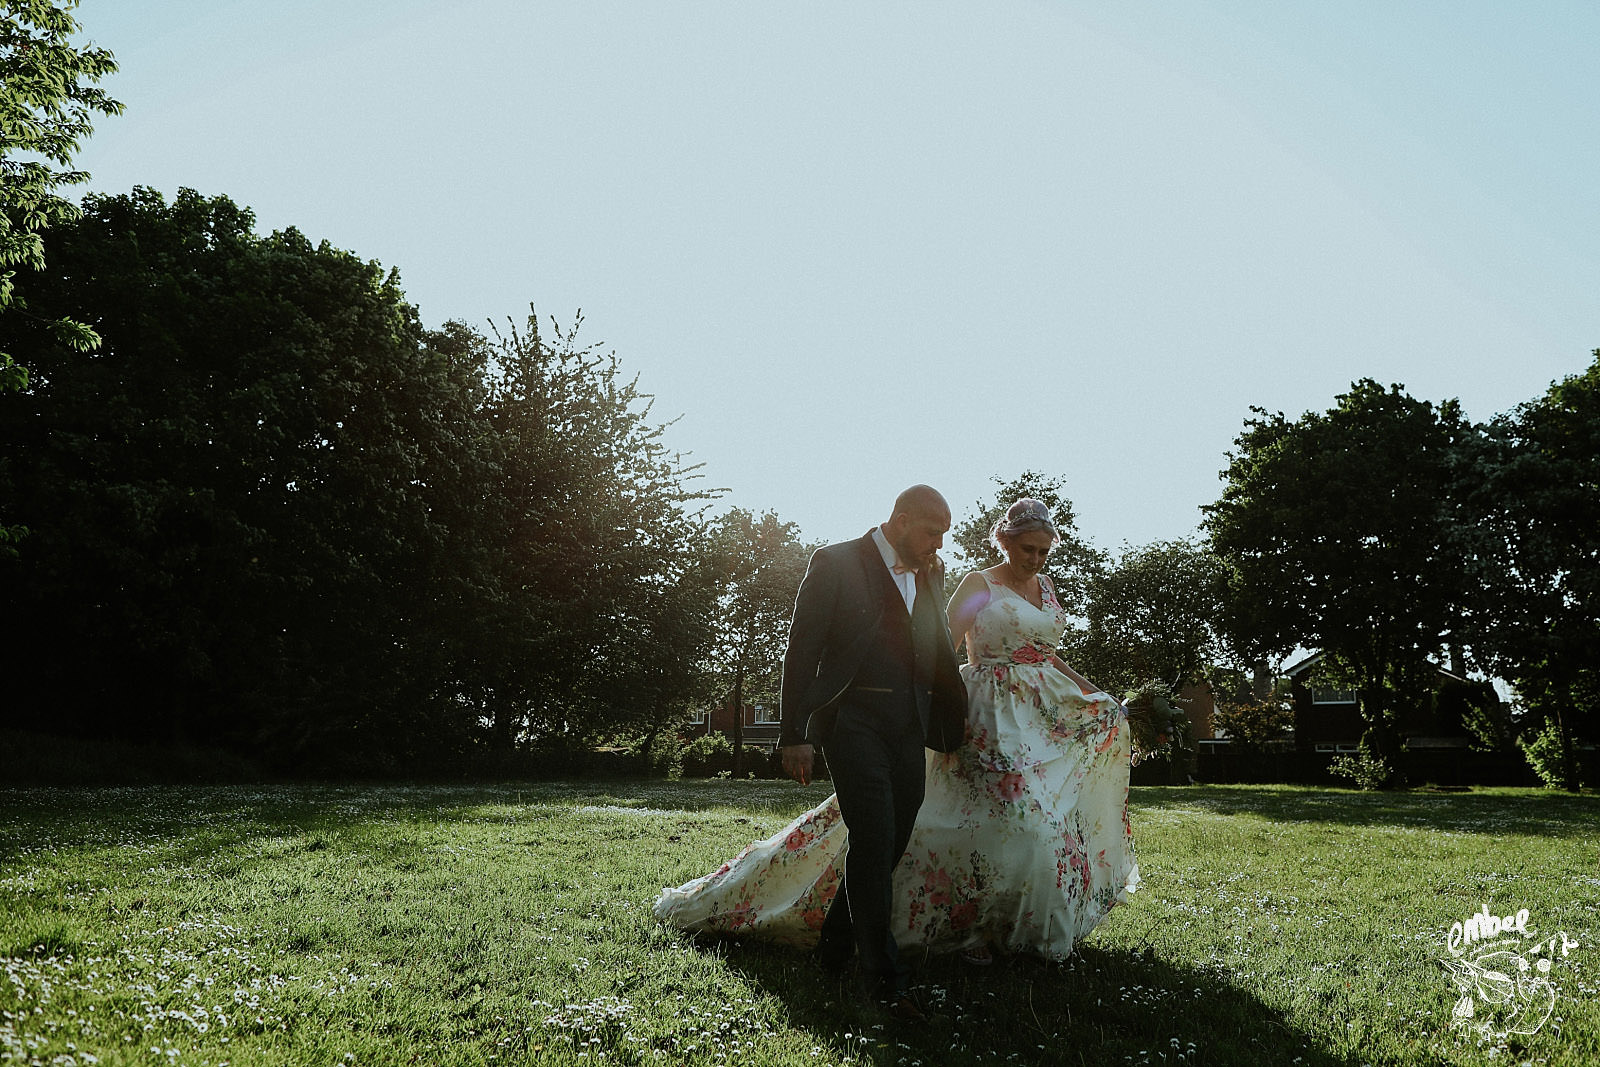 brides wearing flowery dress walking through a field with her husband